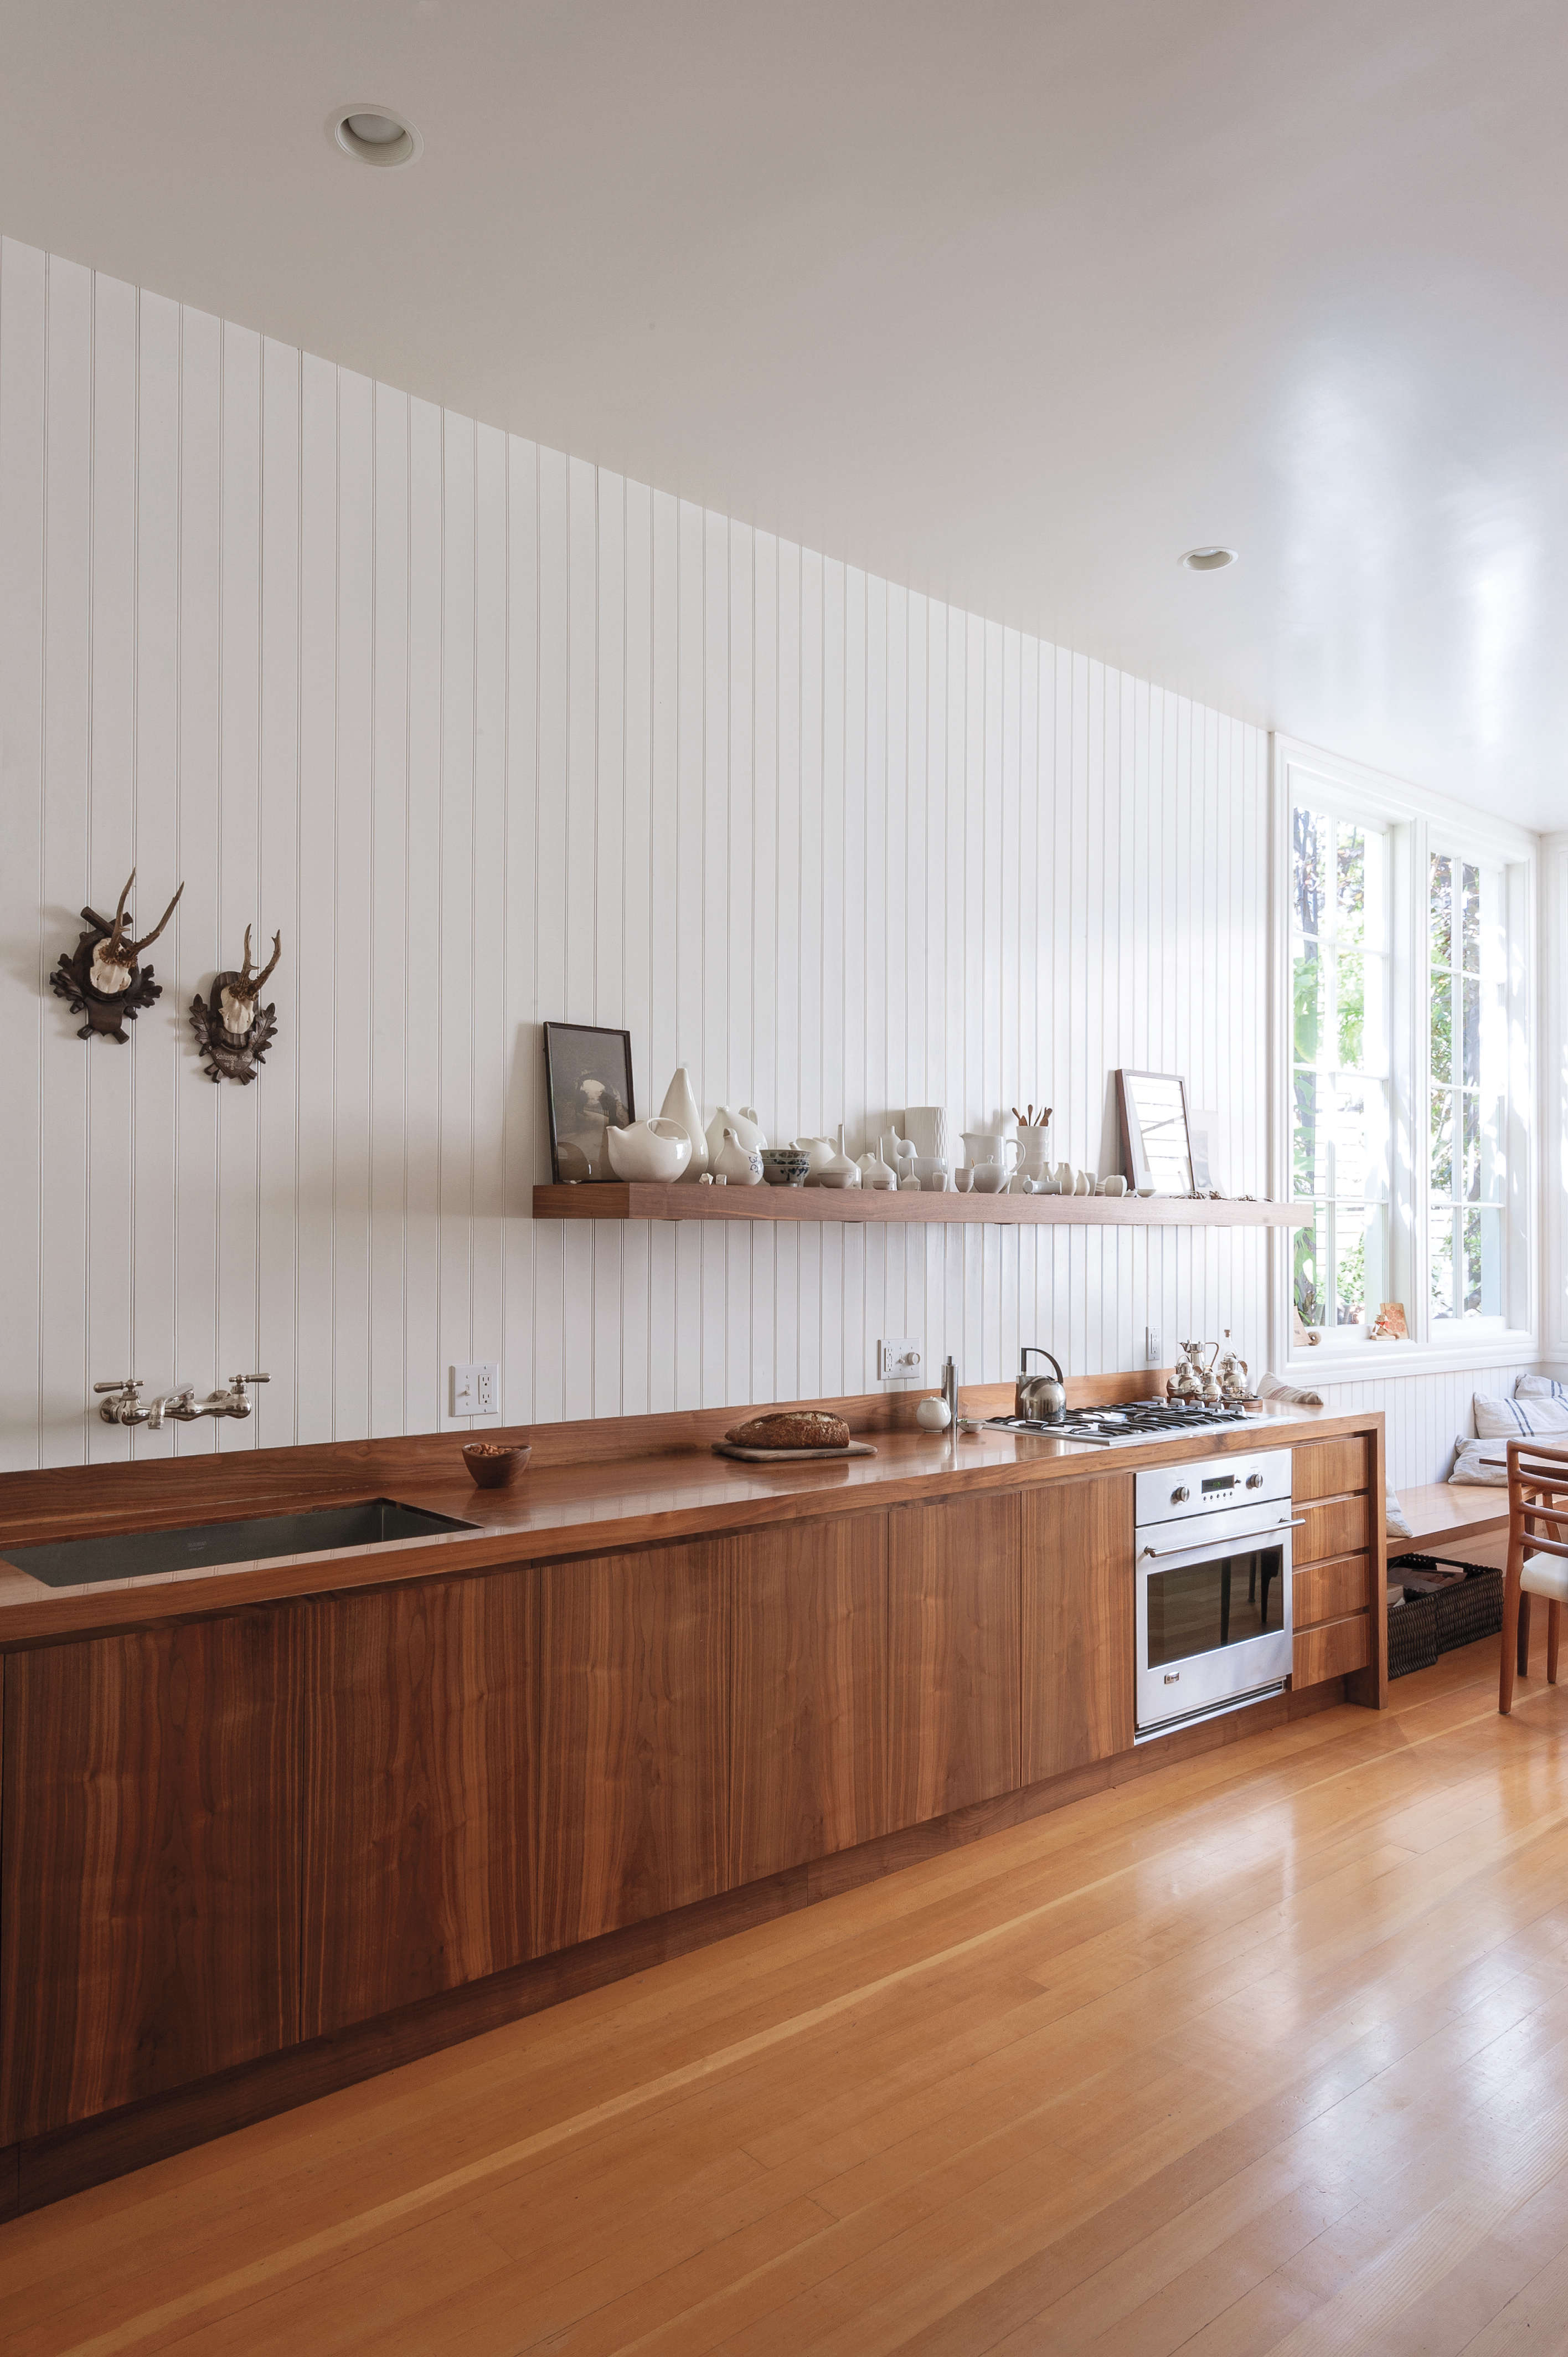 Discount Kitchen Cabinets Sf Bay Area   Discount Kitchen Cabinets San  Francisco Bay Area Discount Kitchen